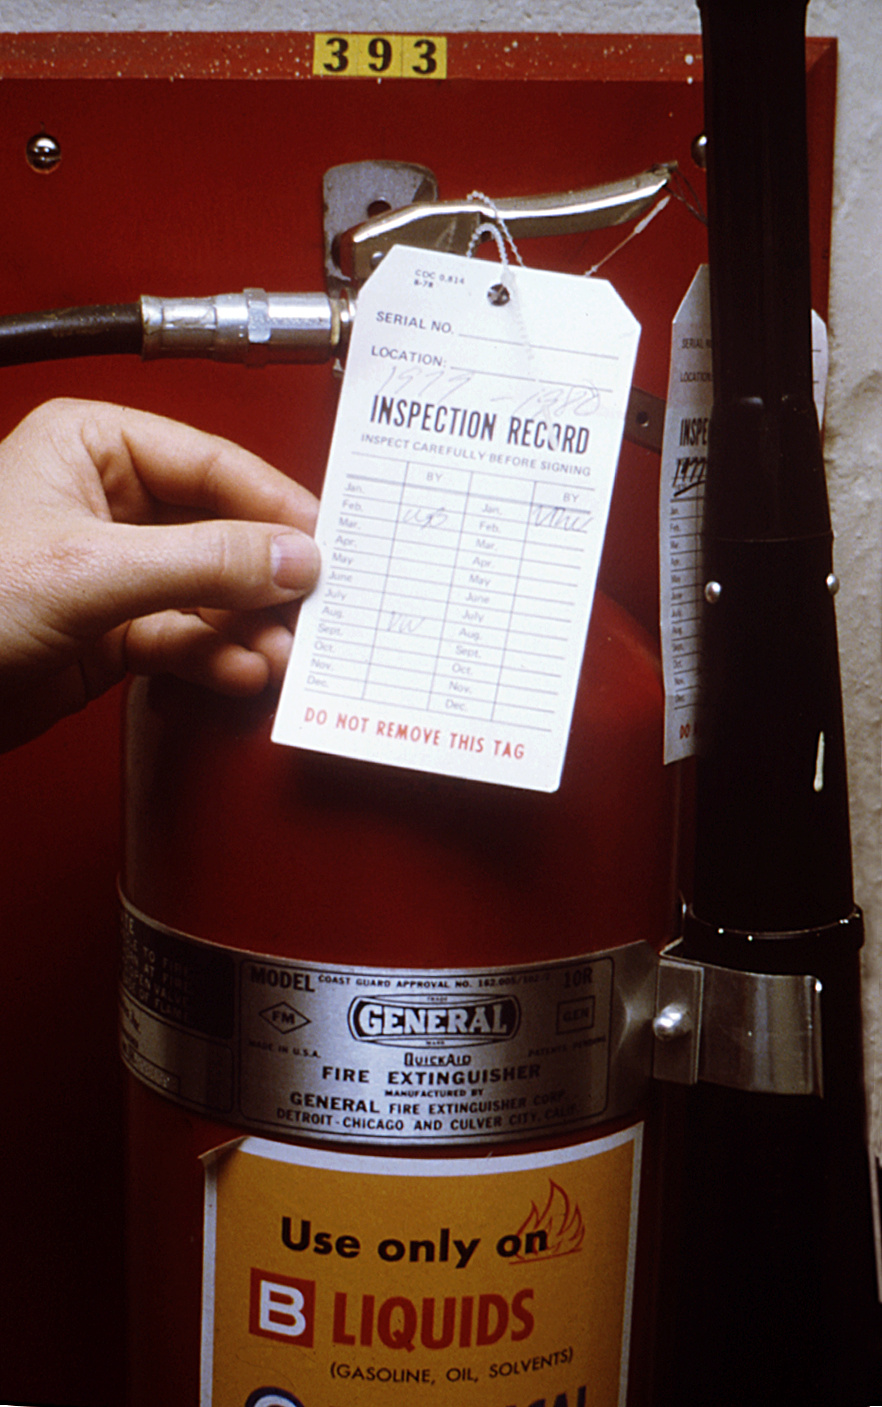 This photograph was taken during a safety equipment inspection, which included this fire extinguisher.